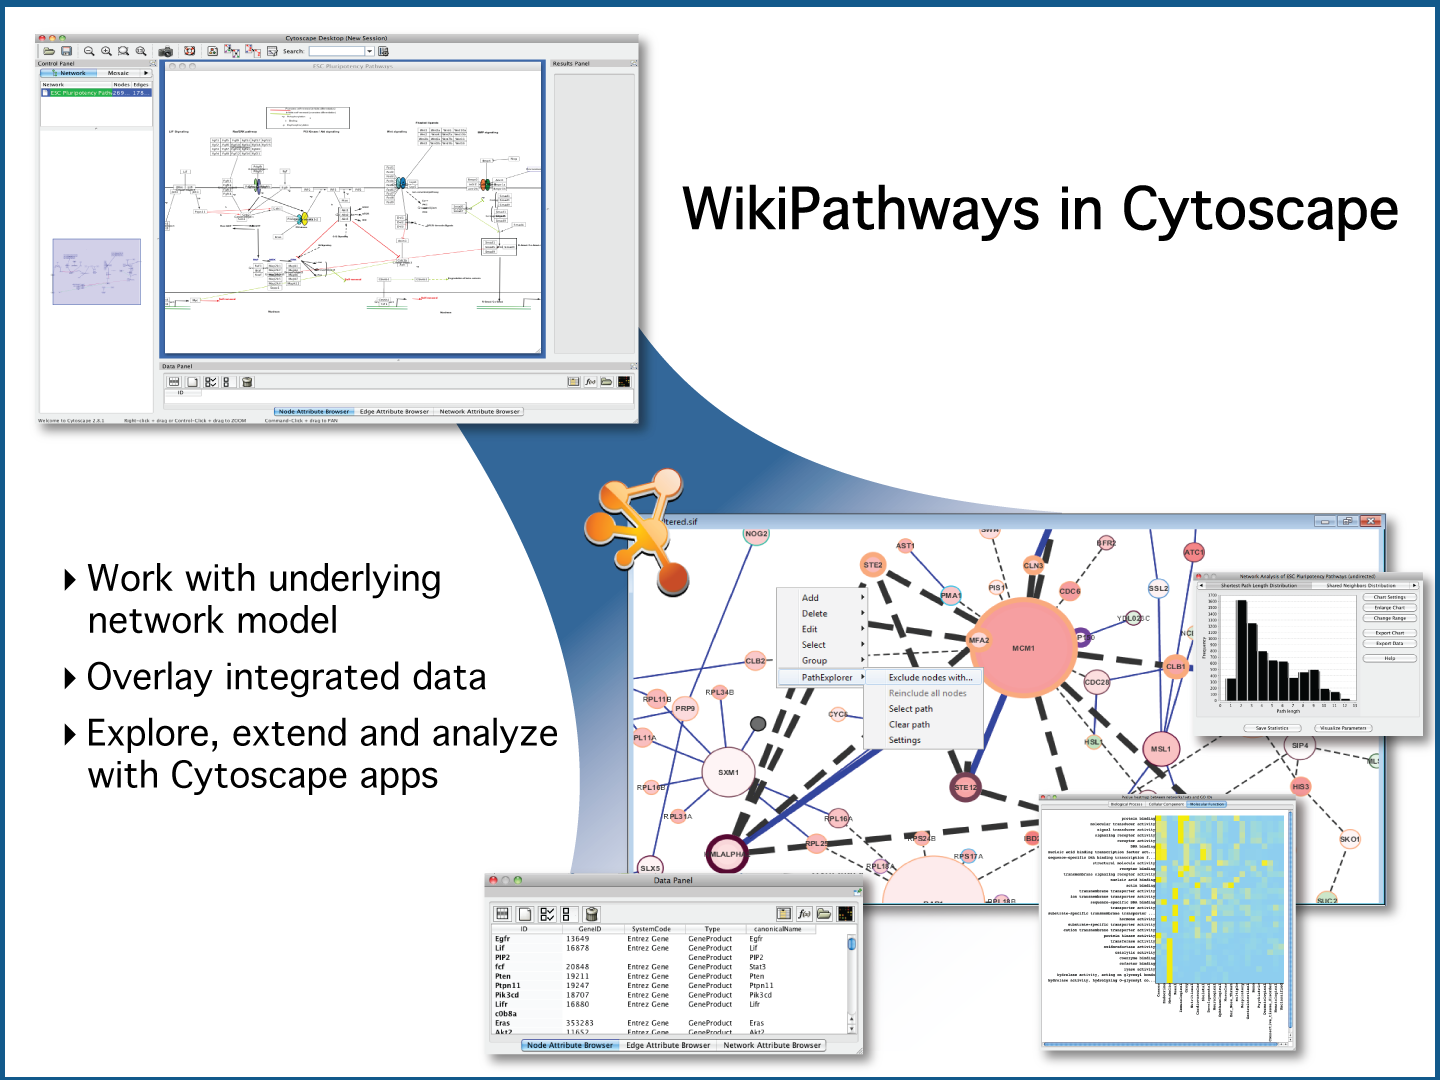 WikiPathways in Cytoscape